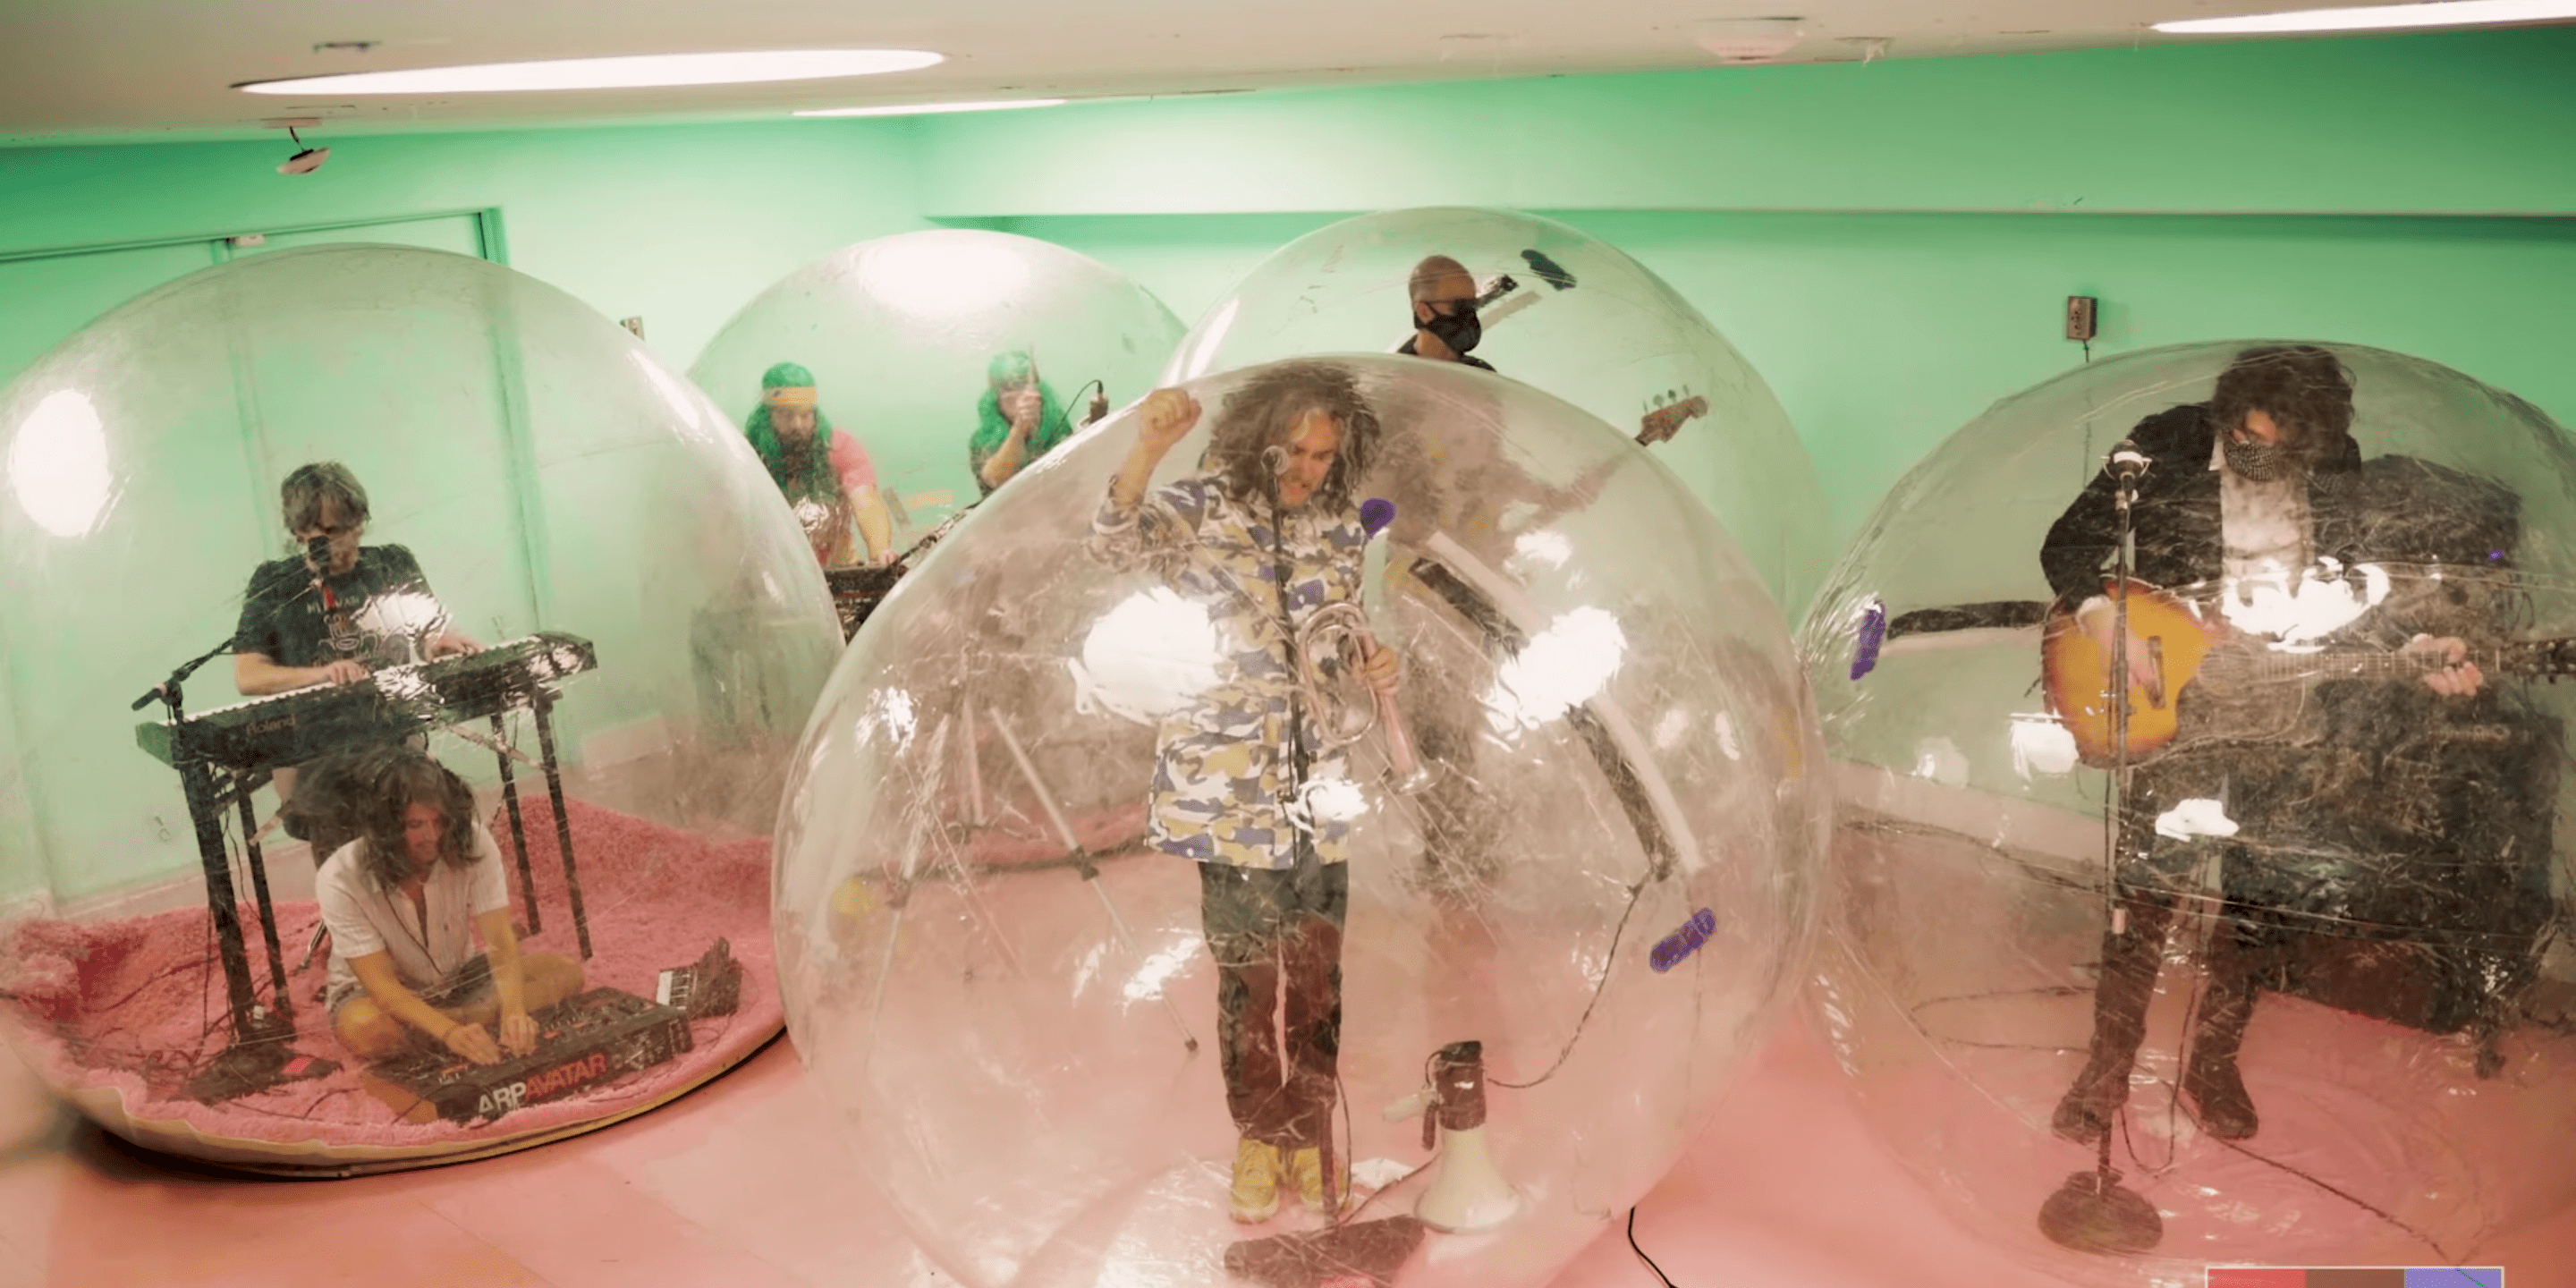 The Flaming Lips Perform Socially-Distanced 'Tiny Desk (Home) Concert' From  Plastic Bubbles [Watch]